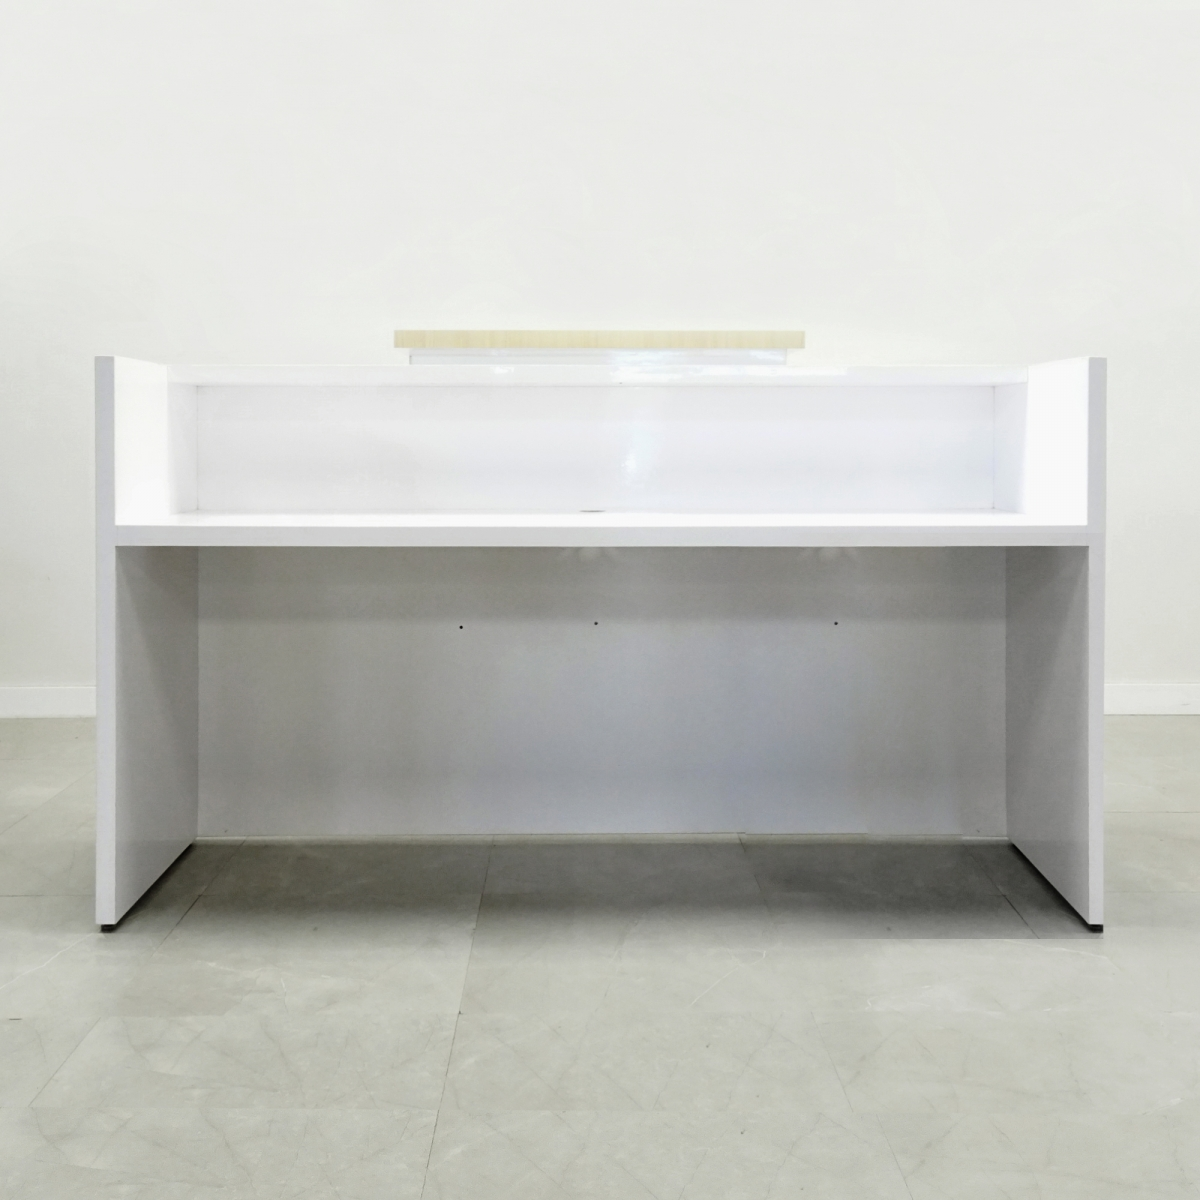 60 In. Chicago Reception Desk white gloss with natural finish PVC laminate counter